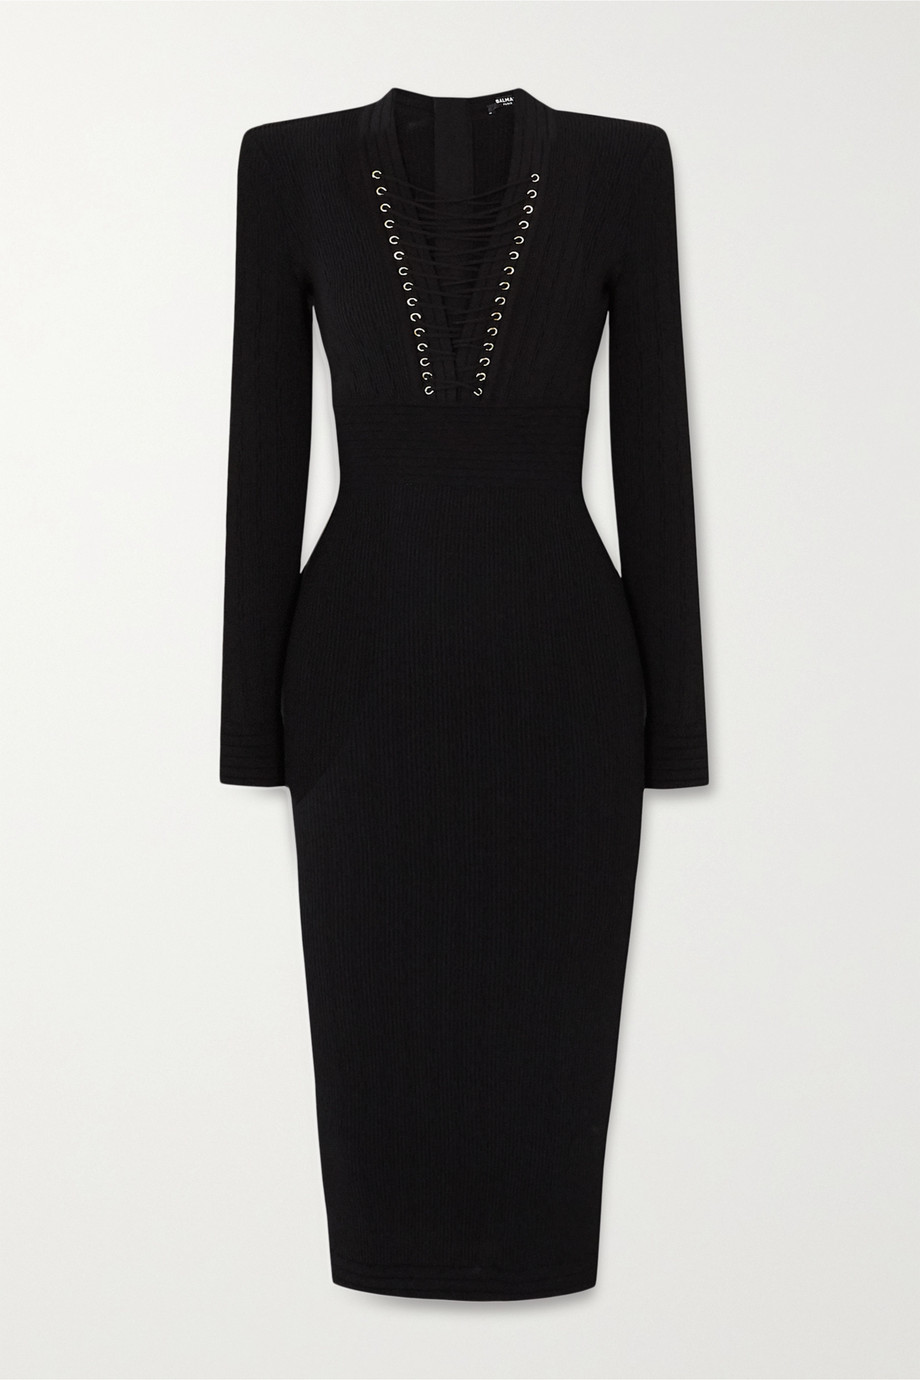 Balmain Lace-up ribbed-knit midi dress